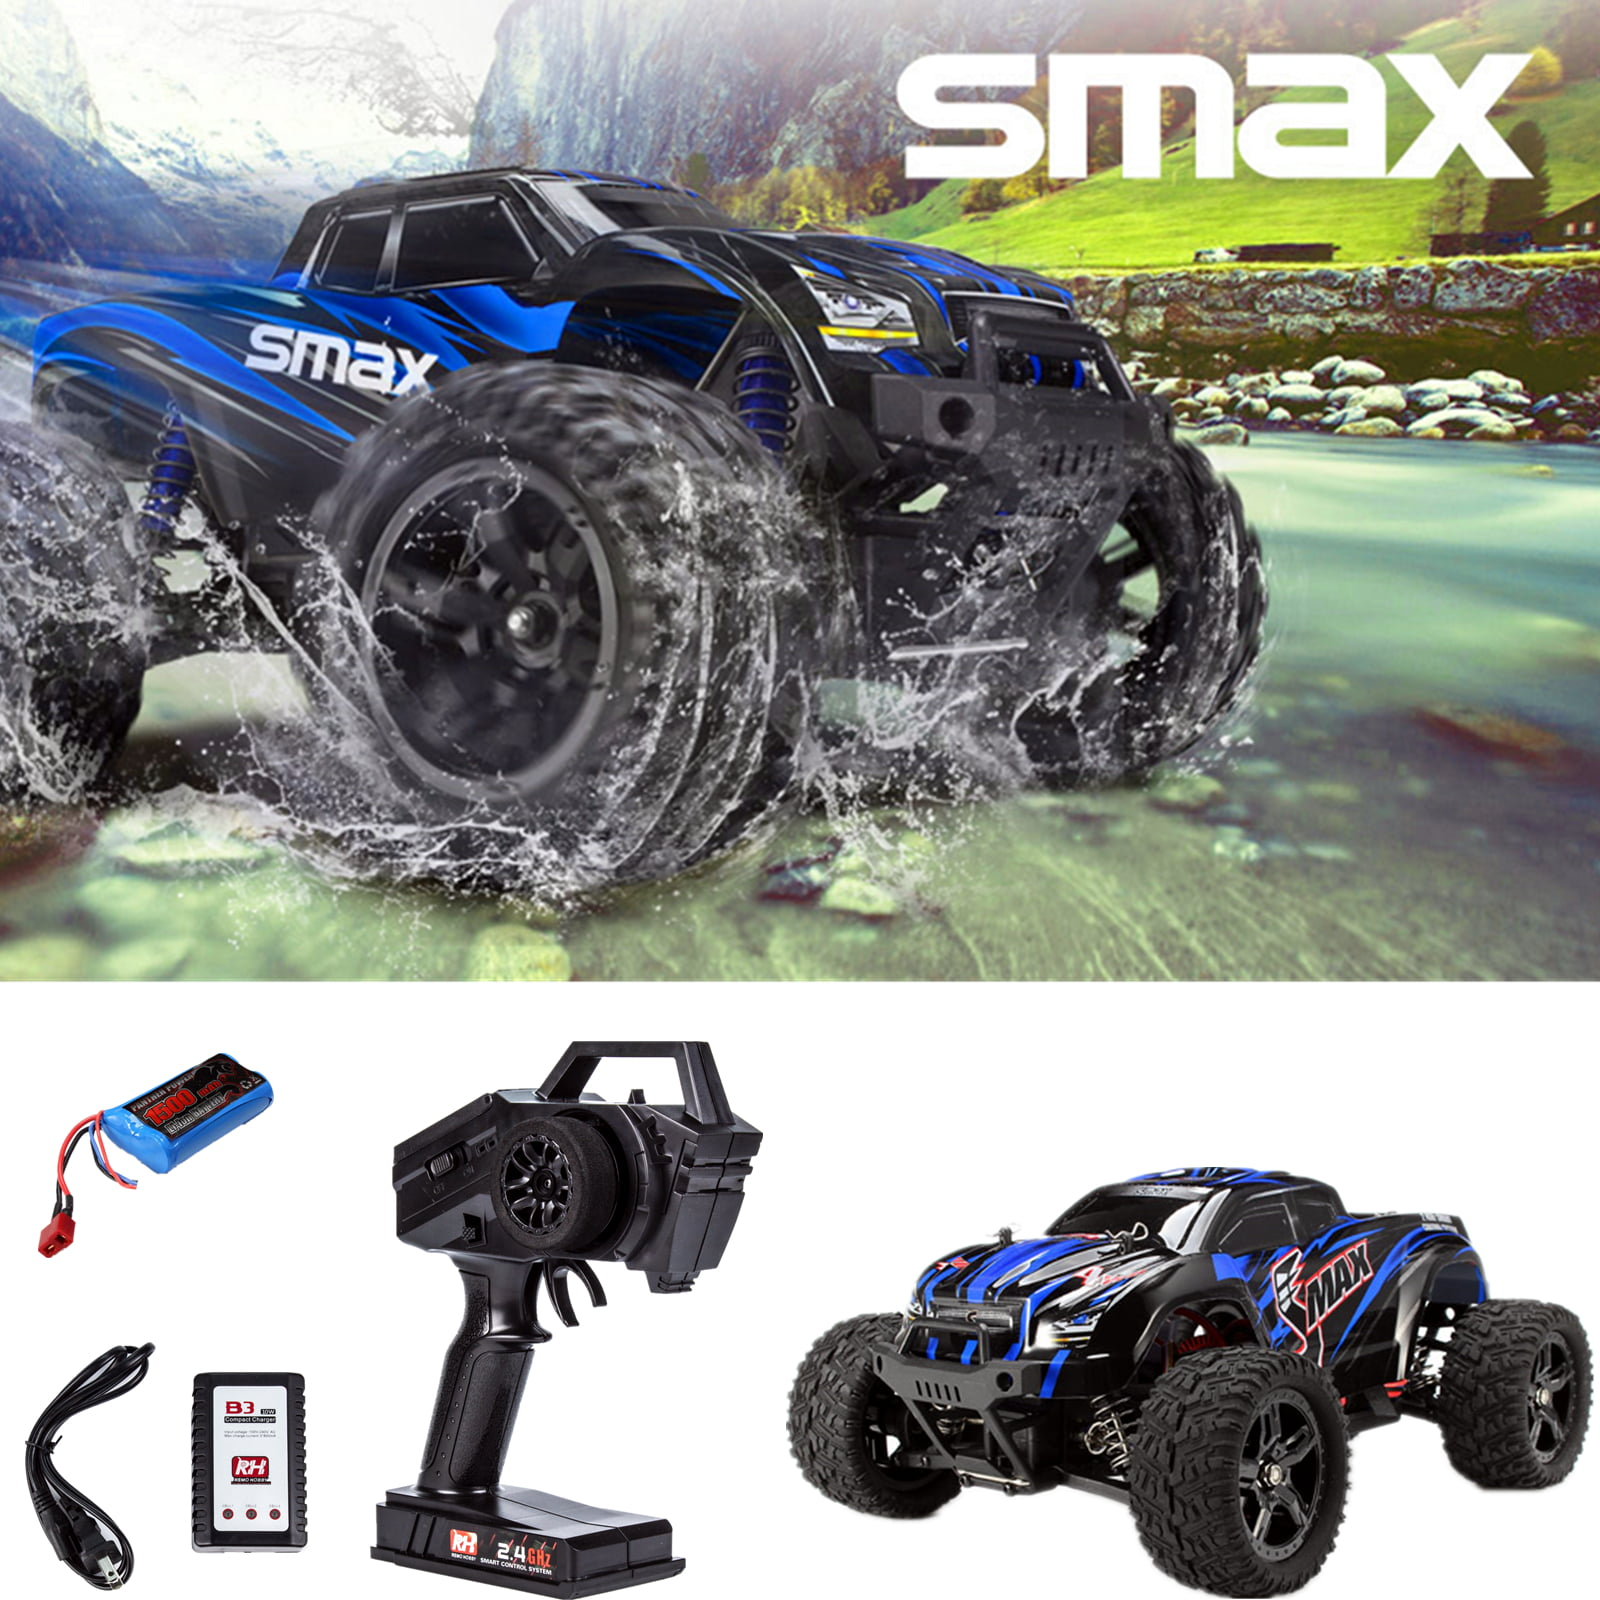 REMO HOBBY 4WD RC Brushed Car 1631 1 16 Scale Off-road Short-haul Monster Truck by Cheerwing